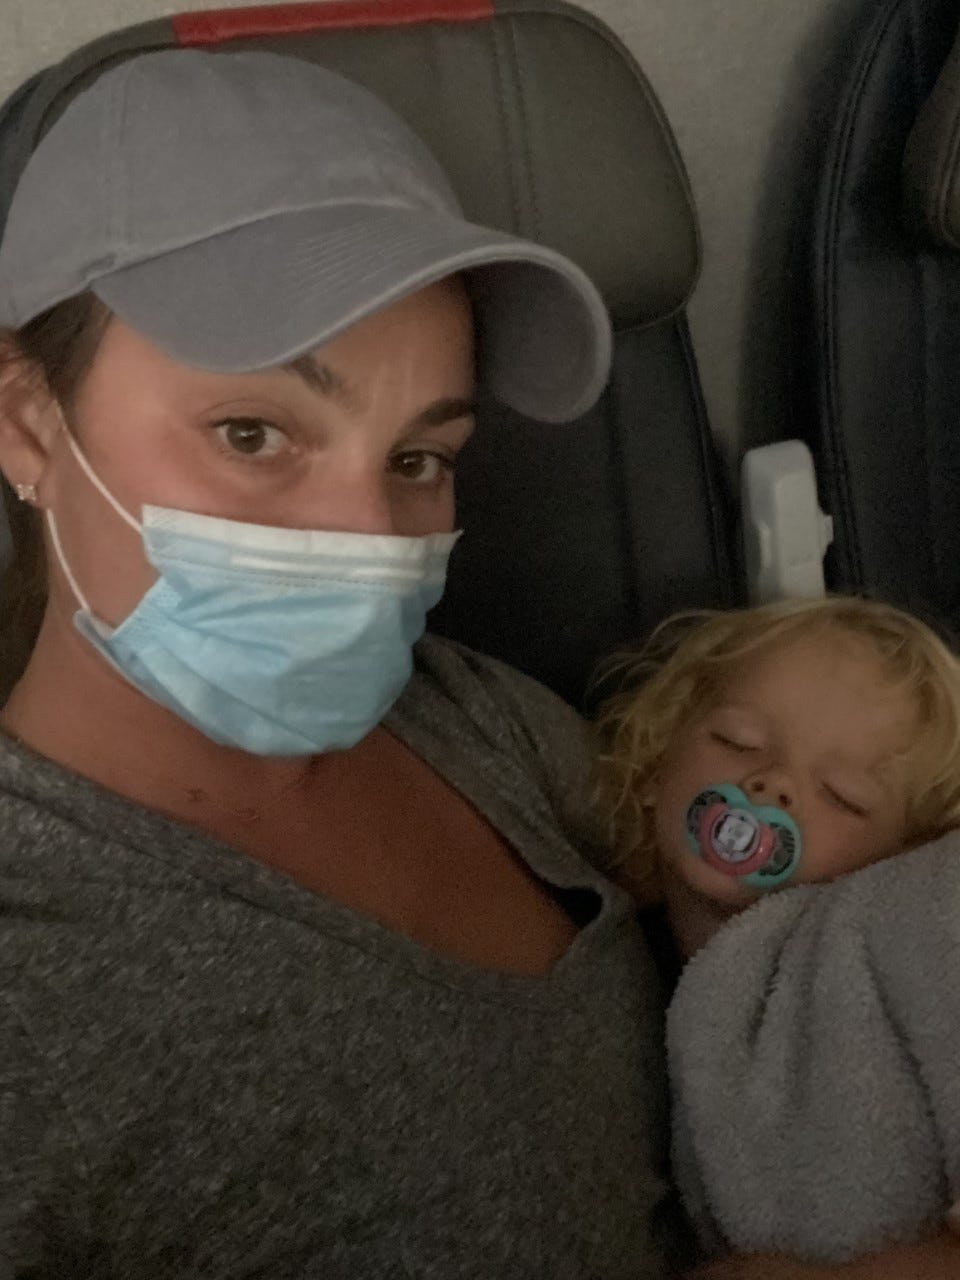 Holiday travel How to make sure kids keep face masks on while flying